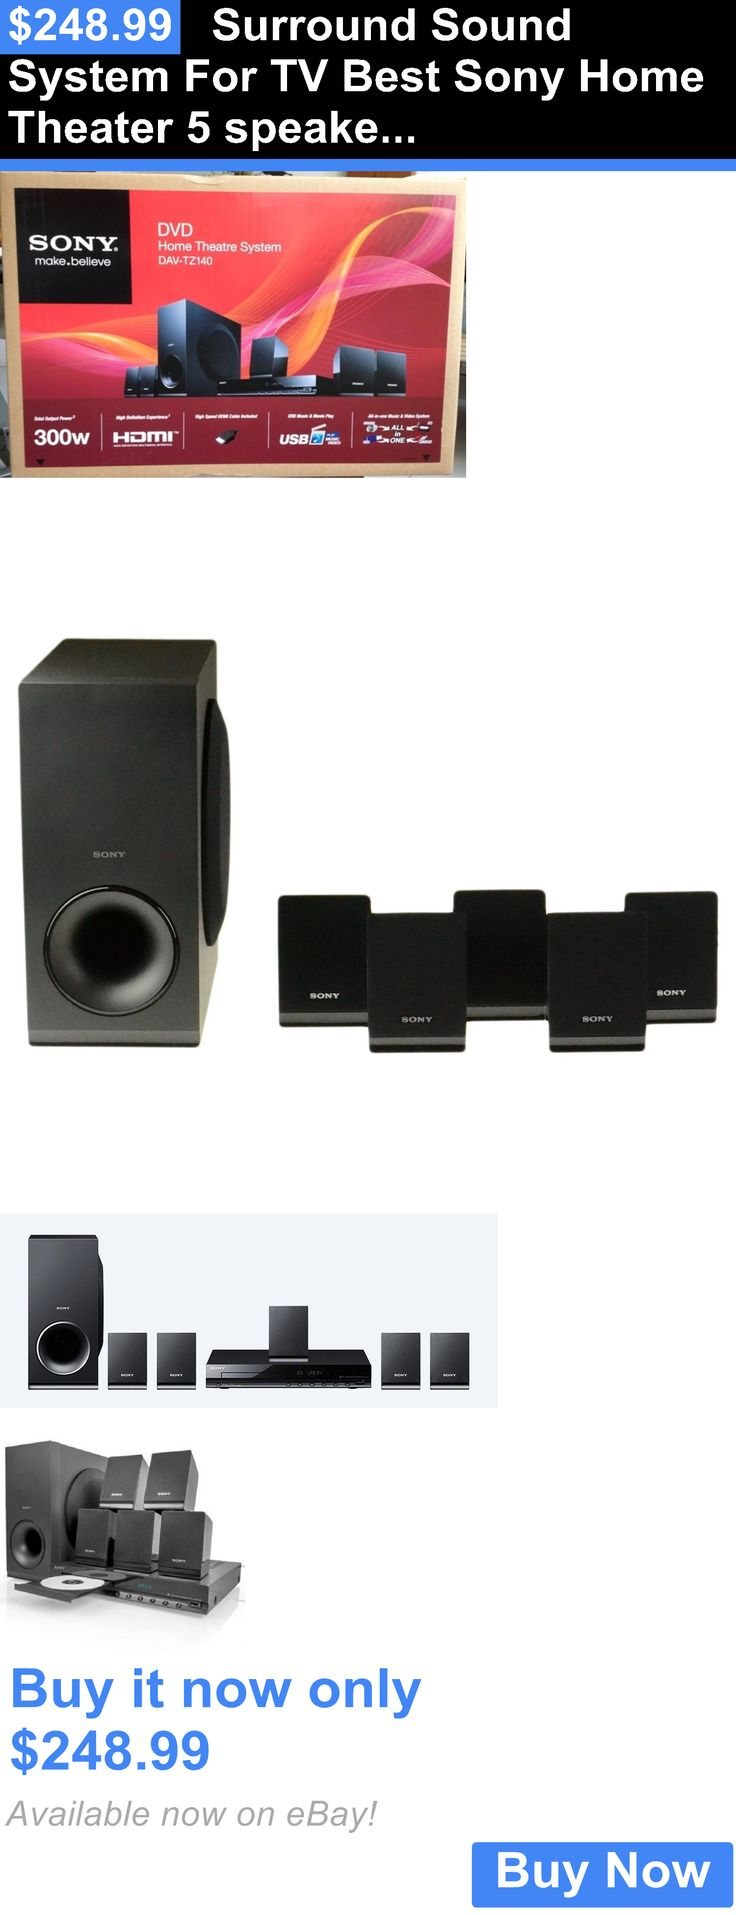 Home Theater Systems: Surround Sound System For Tv Best Sony Home Theater 5 Speakers Subwoofer 300Watt BUY IT NOW ONLY: $248.99